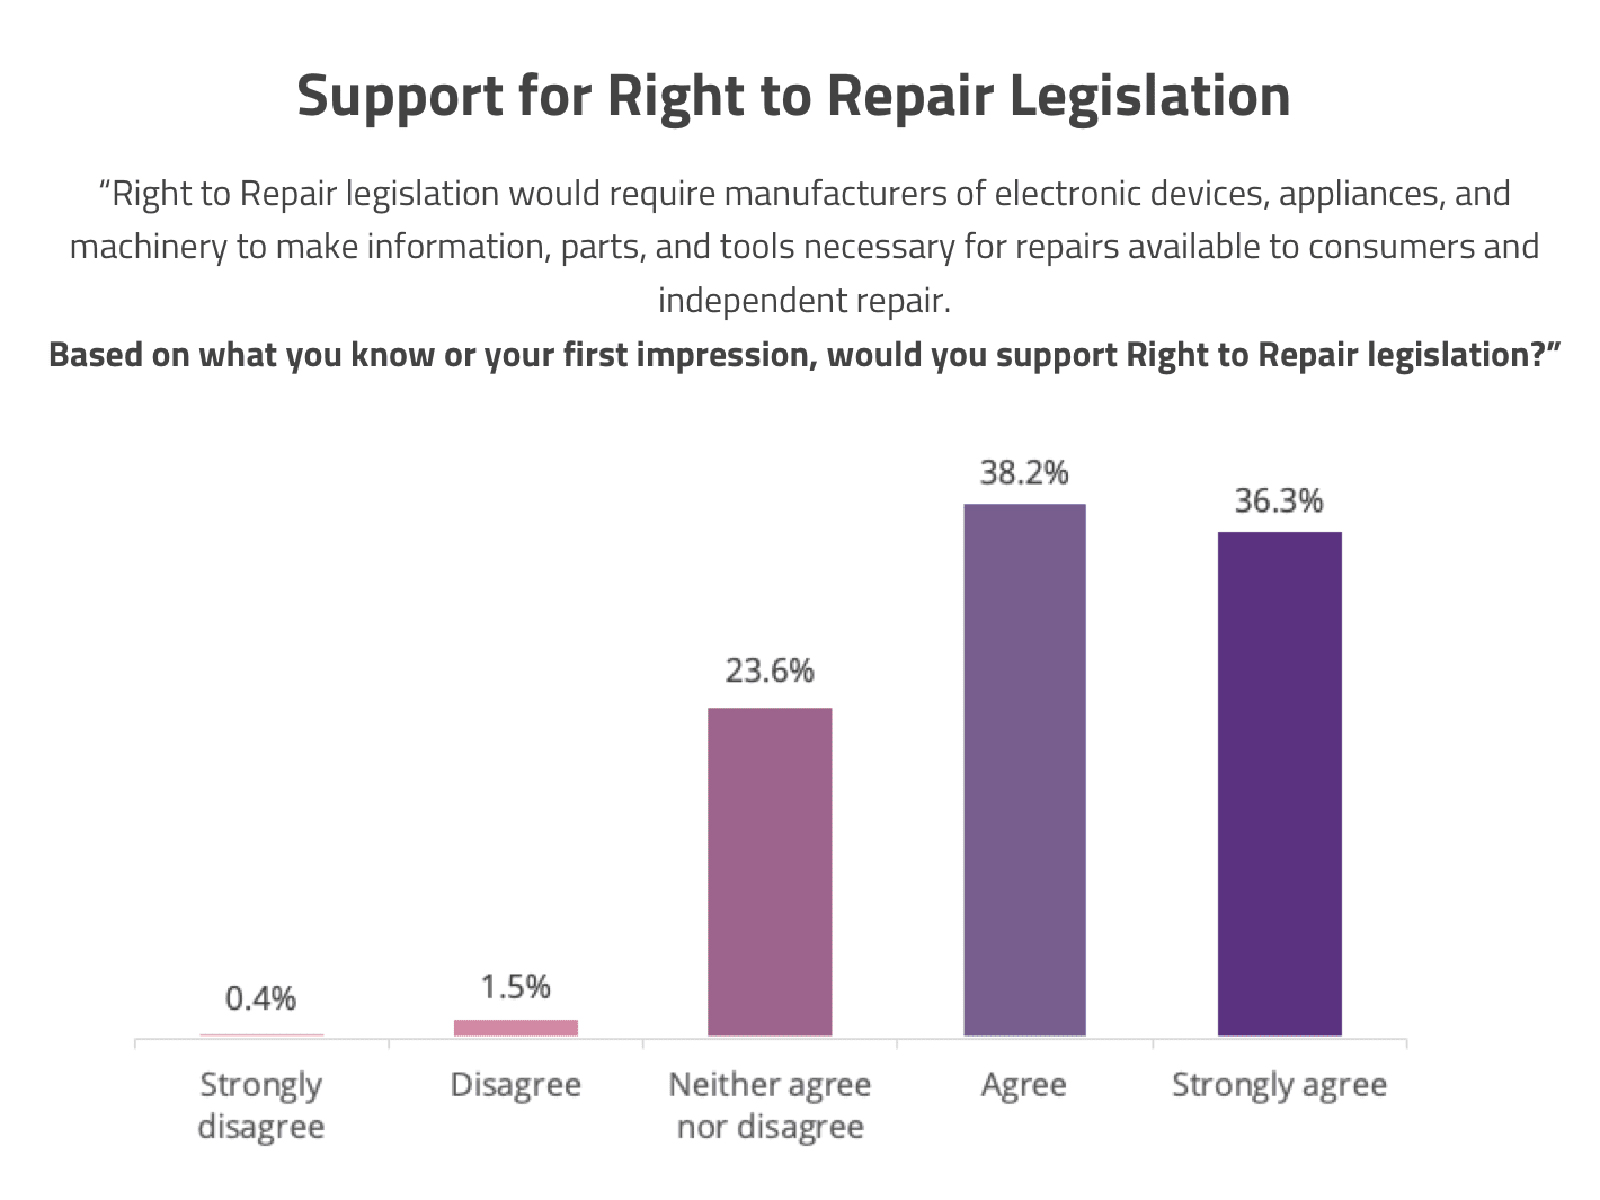 Graph showing support for Right to Repair legislation